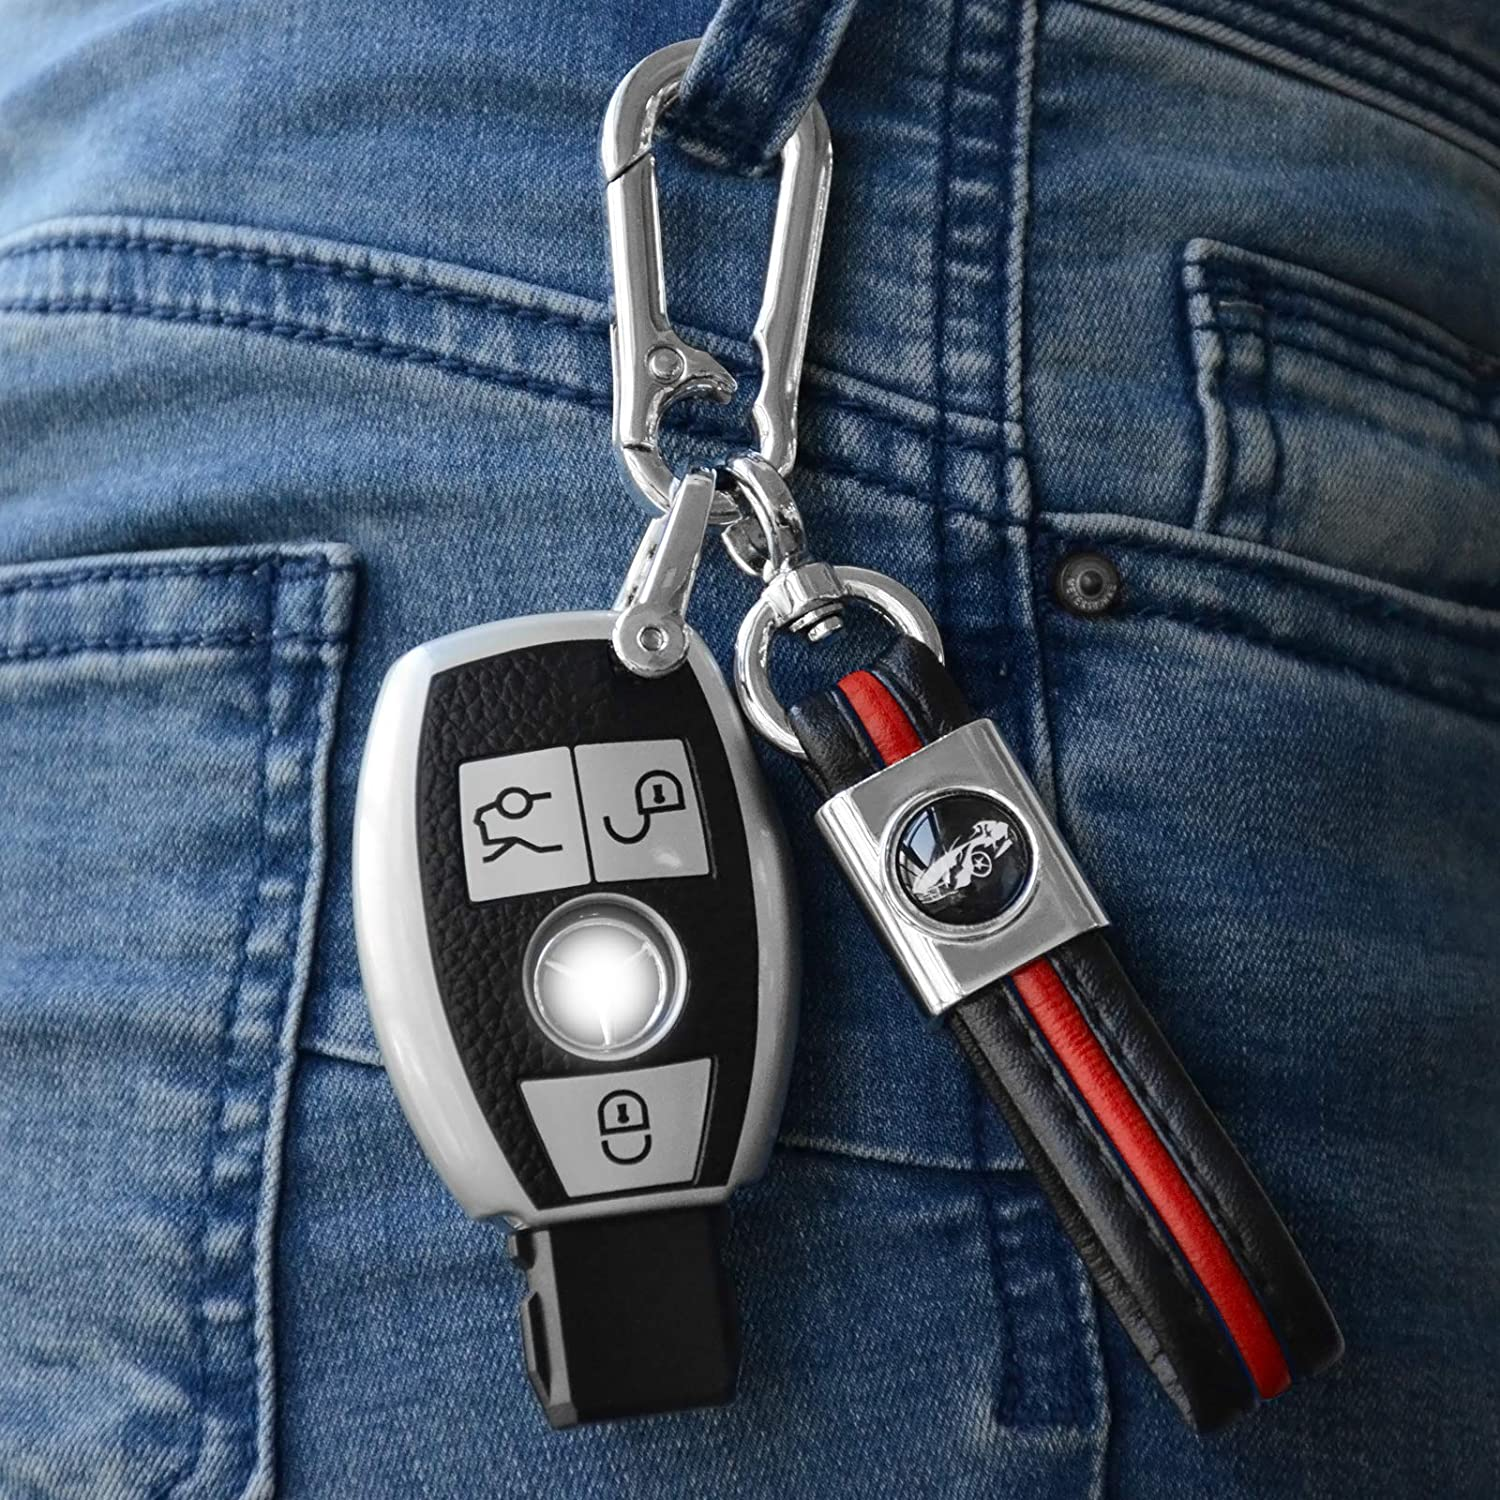 2Pack LATENT Car Keychain Zinc Alloy Keychain Holder for Men Key Chain with Key Ring Leather Key Strap Sturdy Keychains Present for Men Women Suit with All Car Models-Blue